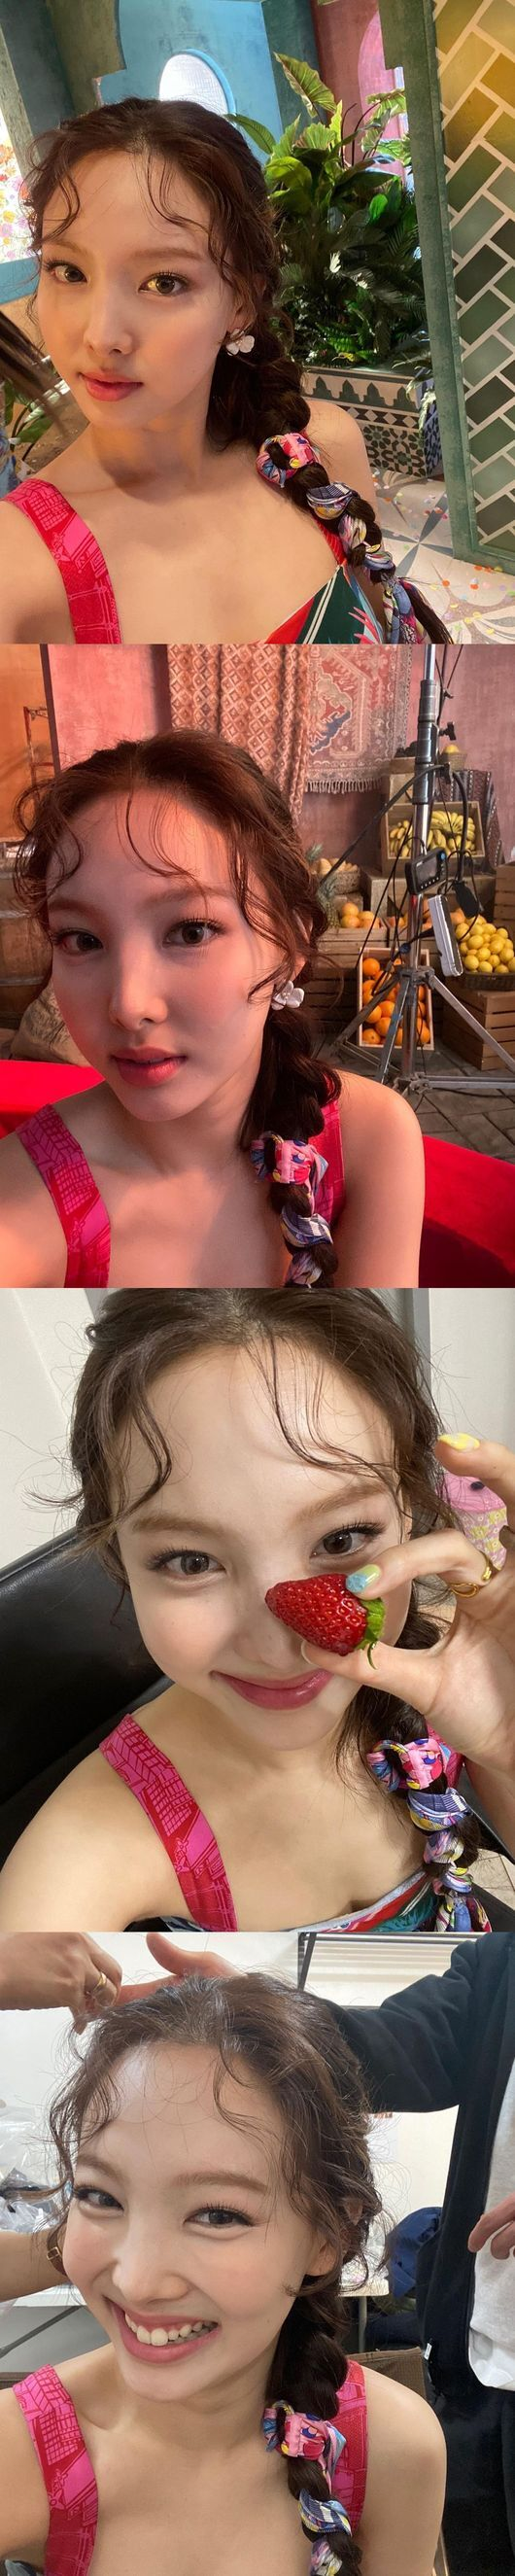 TWICE Nayeon flaunts Doll beautyOn the 8th, Nayeon posted several photos on the official Instagram of TWICE with a short comment called Kingle.Nayeon in the open photo is staring at the camera with his twisted head. Especially, a small face and a refreshing smile that bursts into juice attracts the attention of fans.Meanwhile, TWICE will release the soundtrack and movie of the title song Alcohol-Free at 6 pm on the 9th and officially release the tenth mini album Taste of Love at 1 pm (Eastern US time 0 pm) on the 11th.TWICE Instagram